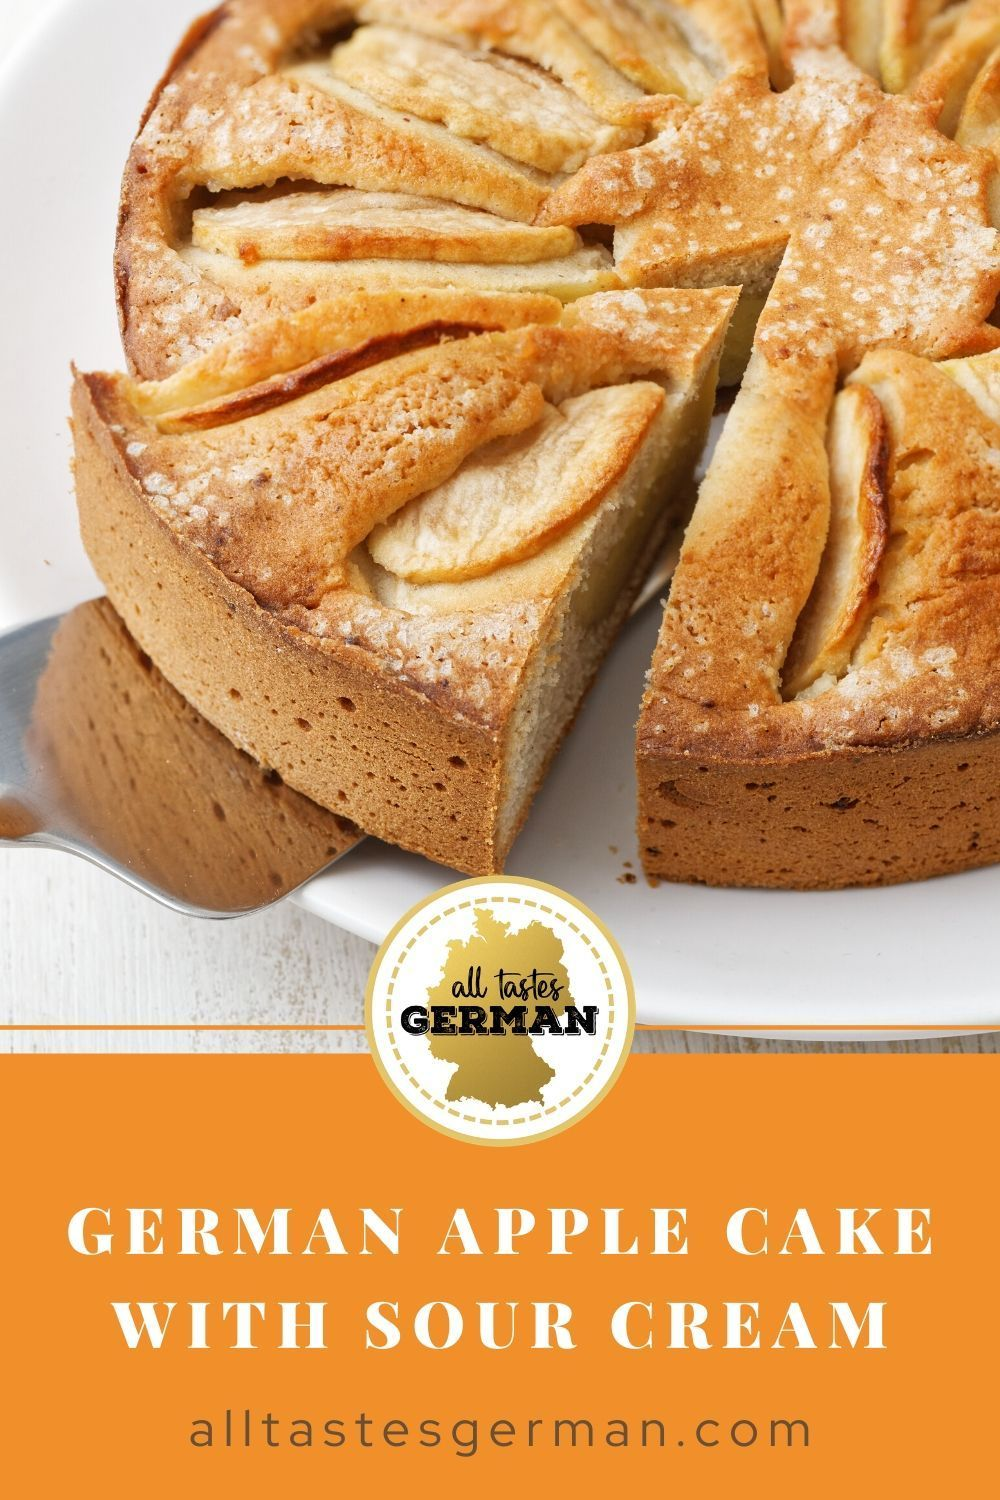 German Apple Cake With Sour Cream In 2020 German Apple Cake Sour Cream Cake Apple Cake